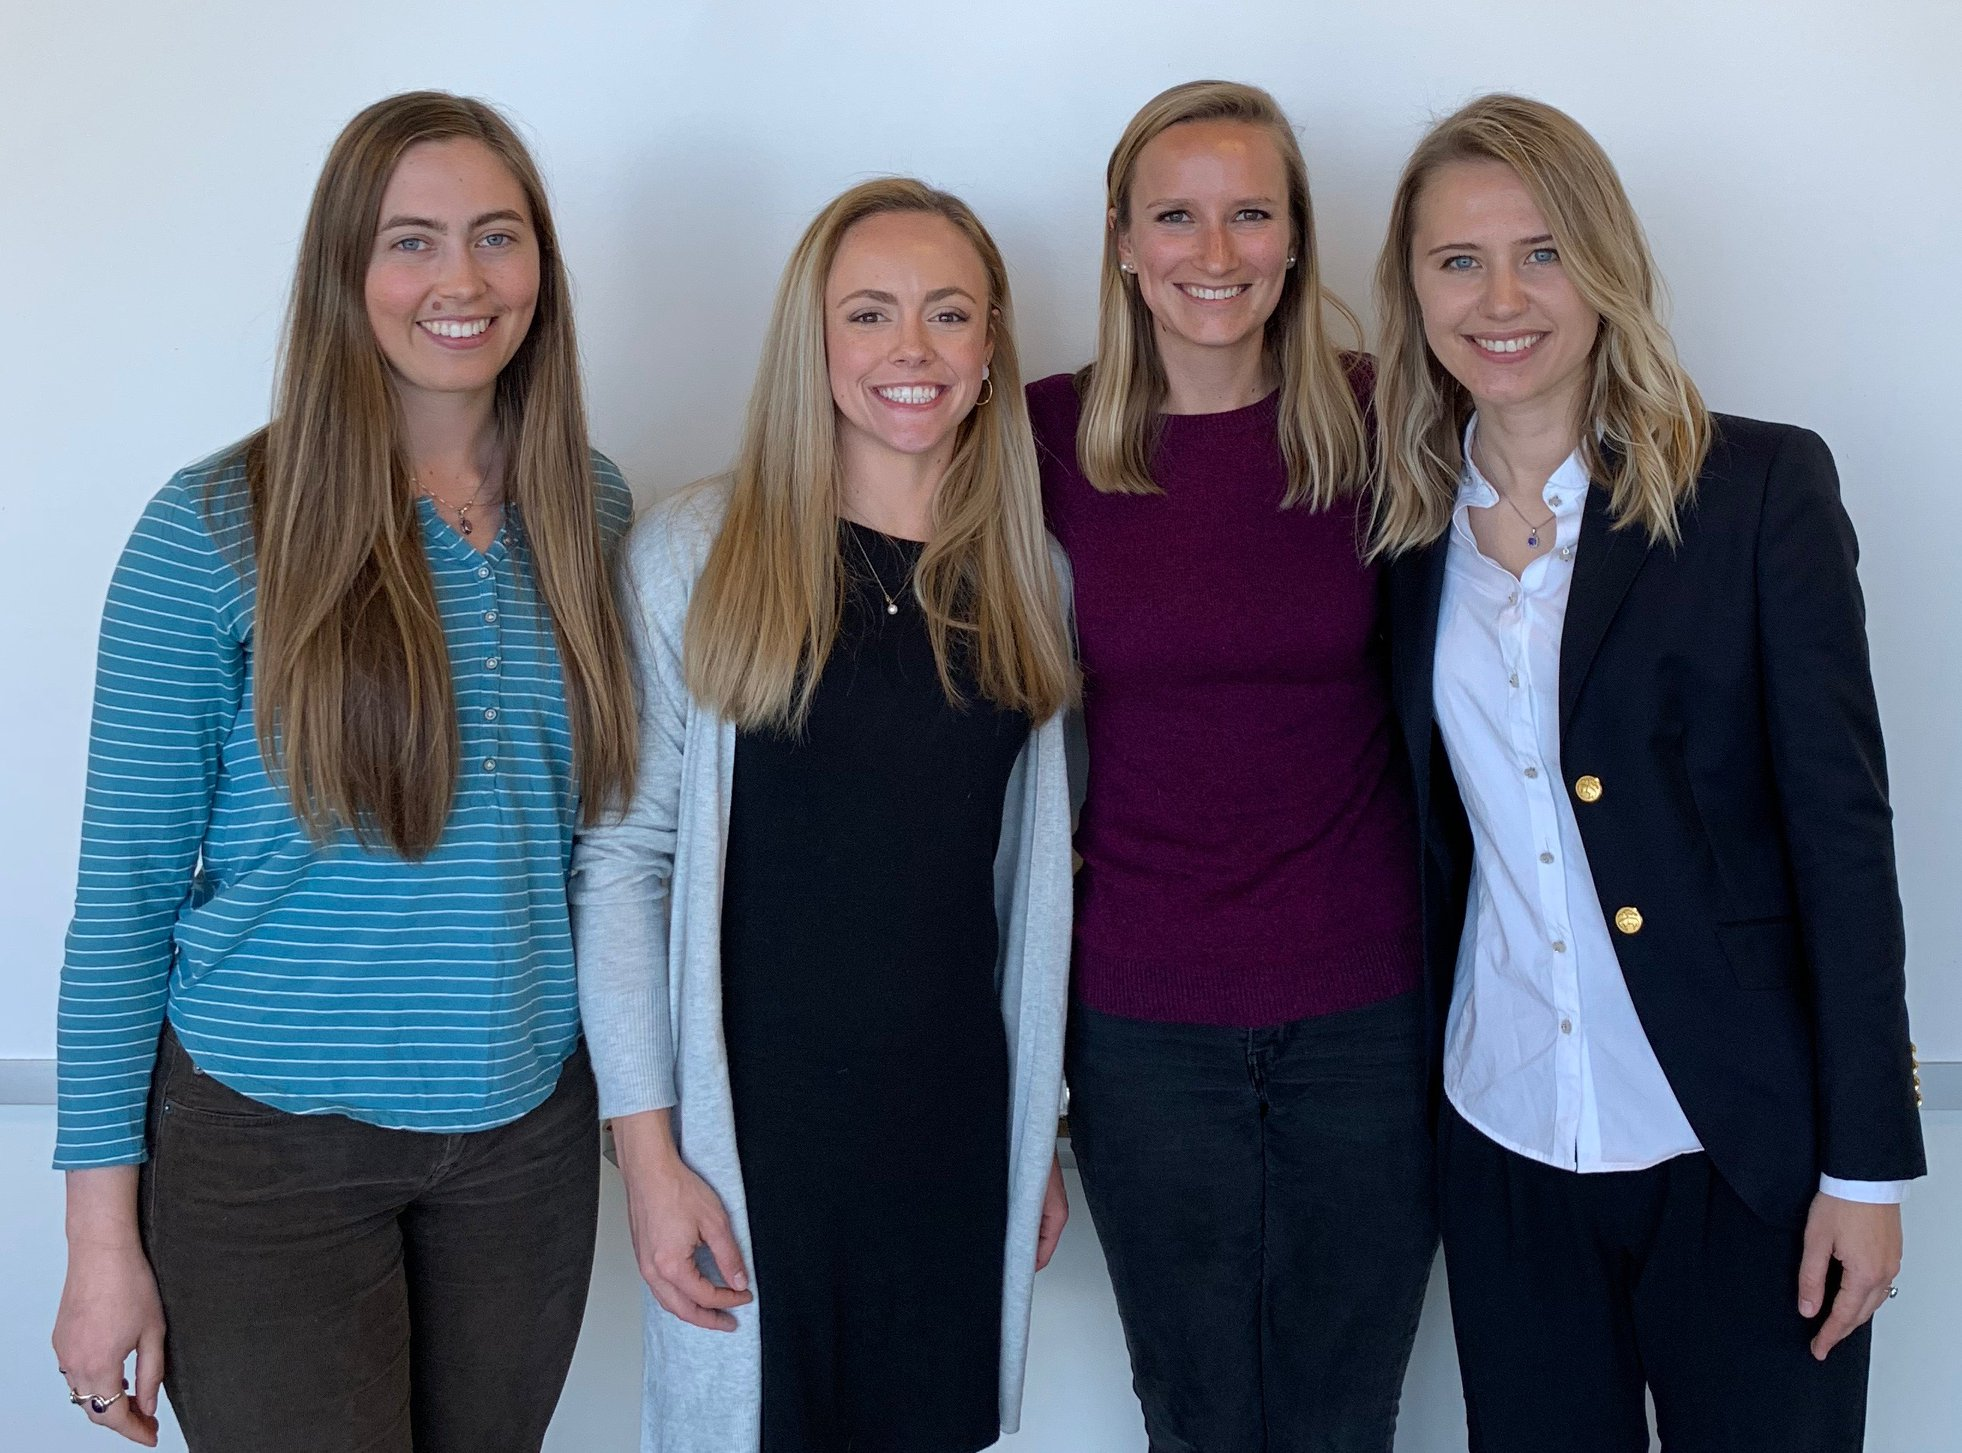 Four NSF Graduate Fellowship Awardees in the Butson lab. So proud of these students and their achievements!  L to R: Chantel Charlebois (Awarded 2019); Shana Black (Awarded 2018); Kara Johnson (Awarded 2018); and Daria Anderson (Awarded 2016).